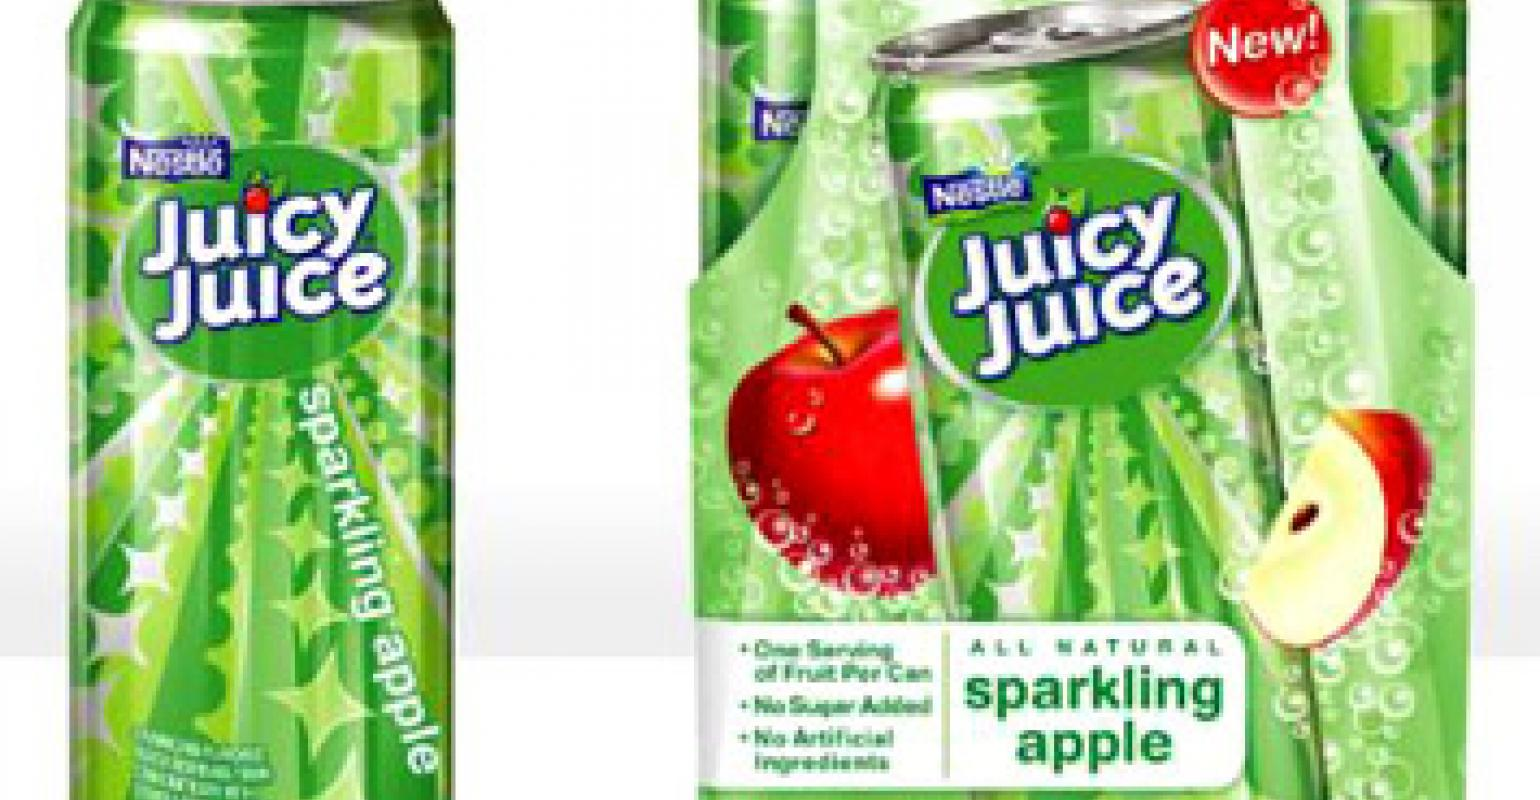 Beverage Packaging Juicy Juice Launches New Sparkling Fruit Juice In Packagingdigest Com Juicy juice is pasteurized.3 it is manufactured in ocean spray production facilities, as a result of a 2002 joint agreement between nestle and ocean spray.4. beverage packaging juicy juice